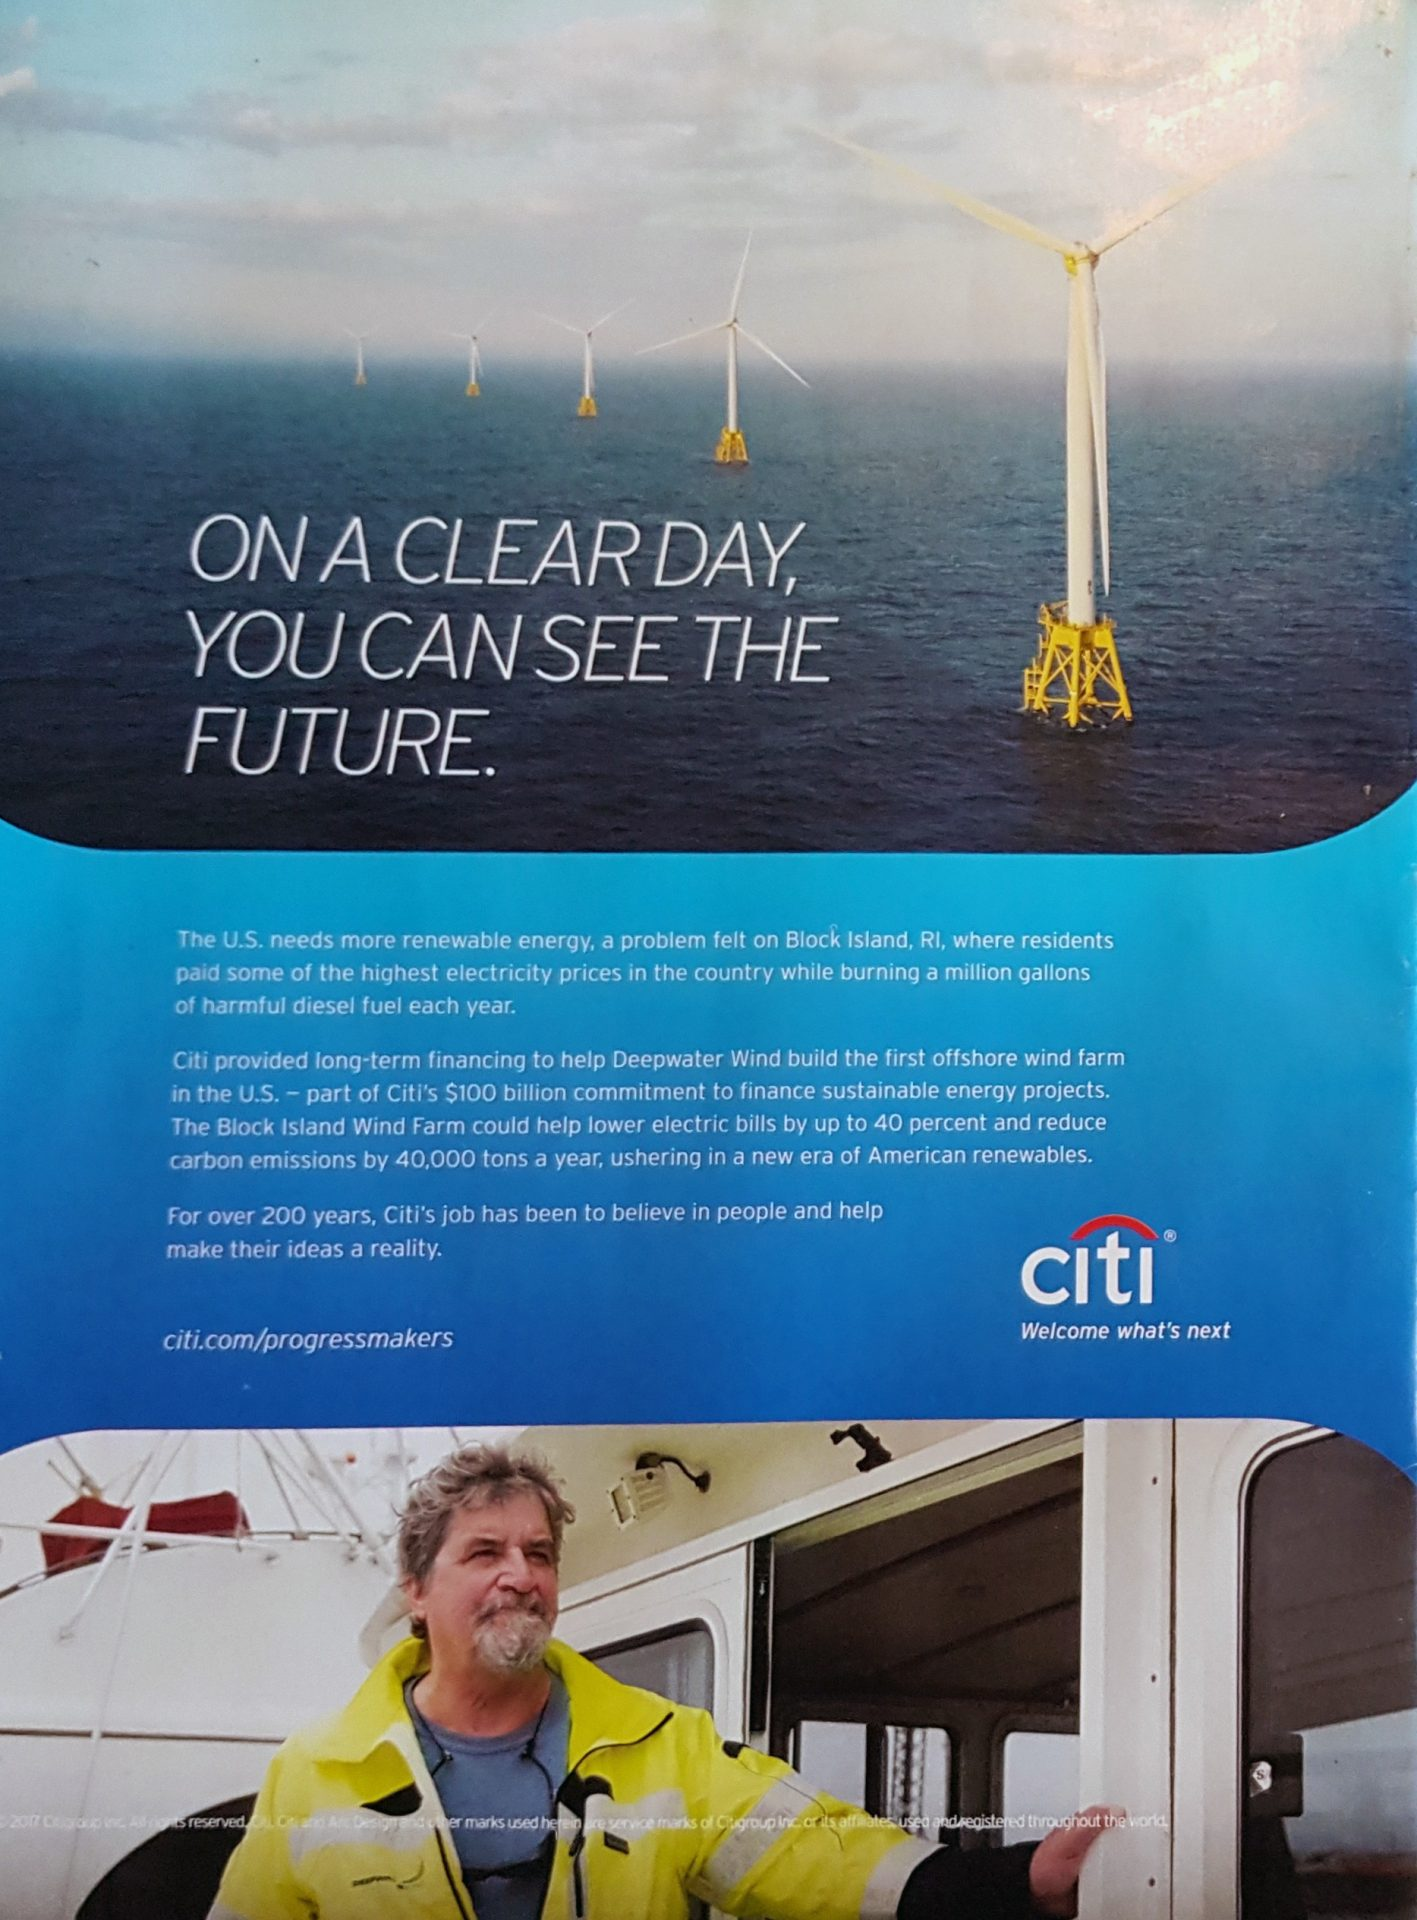 Bryan Wilson was the face of a Citi print ad campaign for the windfarm